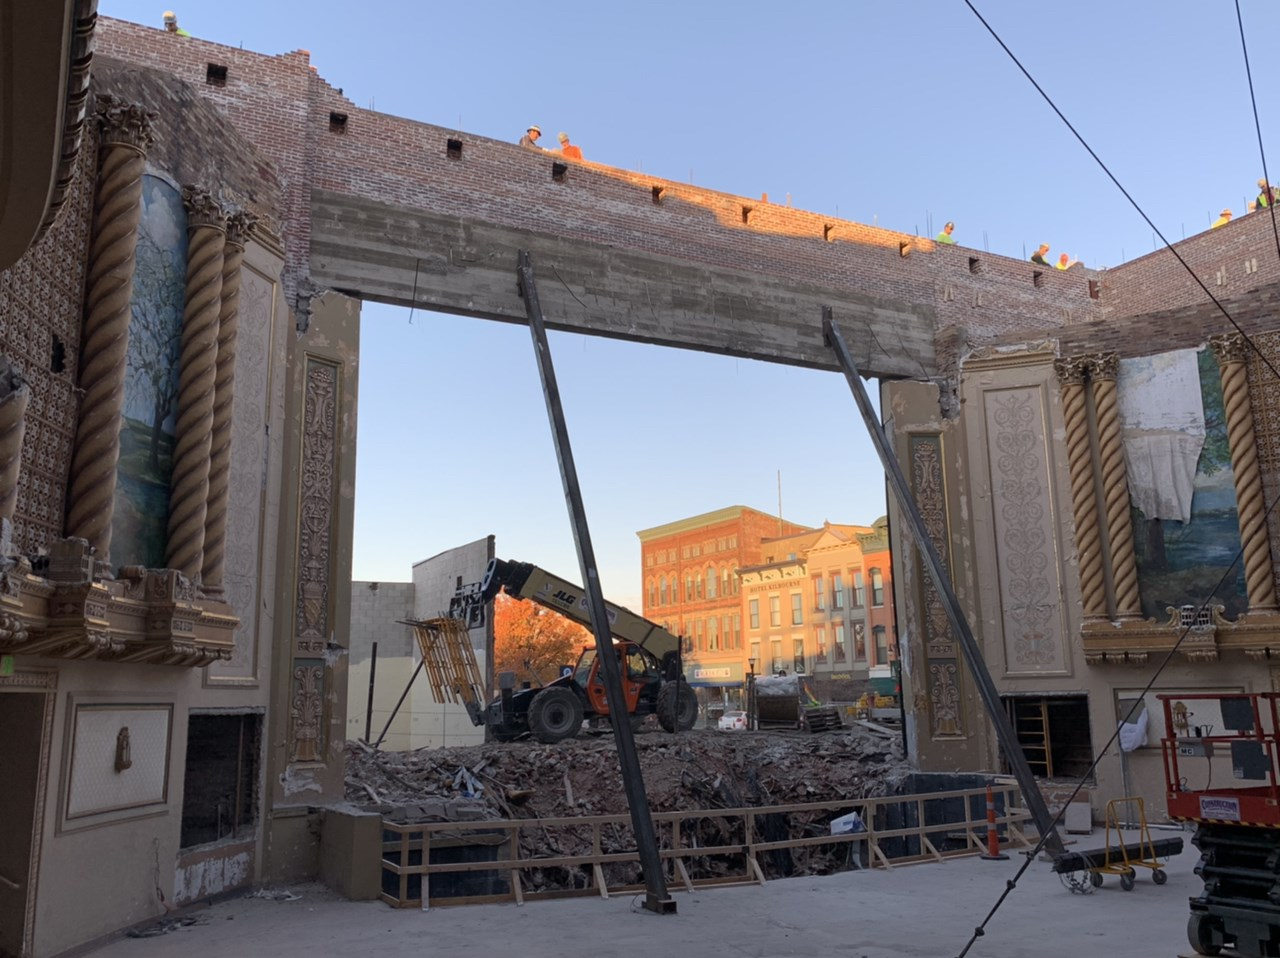 Theater under construction